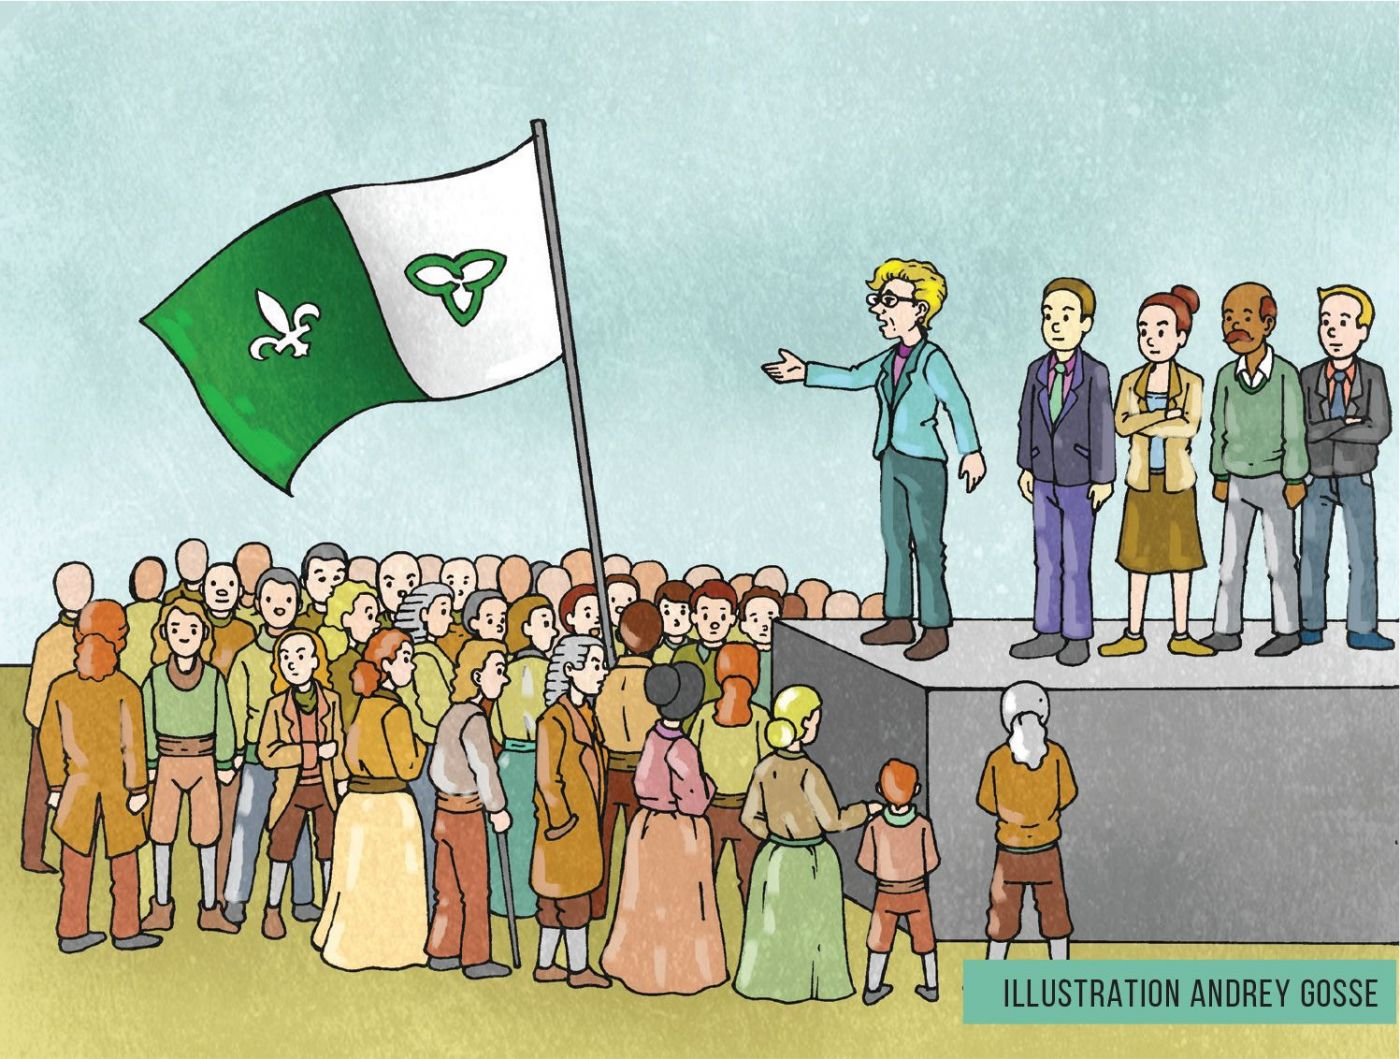 Computer-generated colour drawing of a crowd waving a large Franco-Ontarian flag. Standing on a stage, a blonde speaker in a suit addresses the crowd. She is accompanied by two white men, a black man and a white woman.